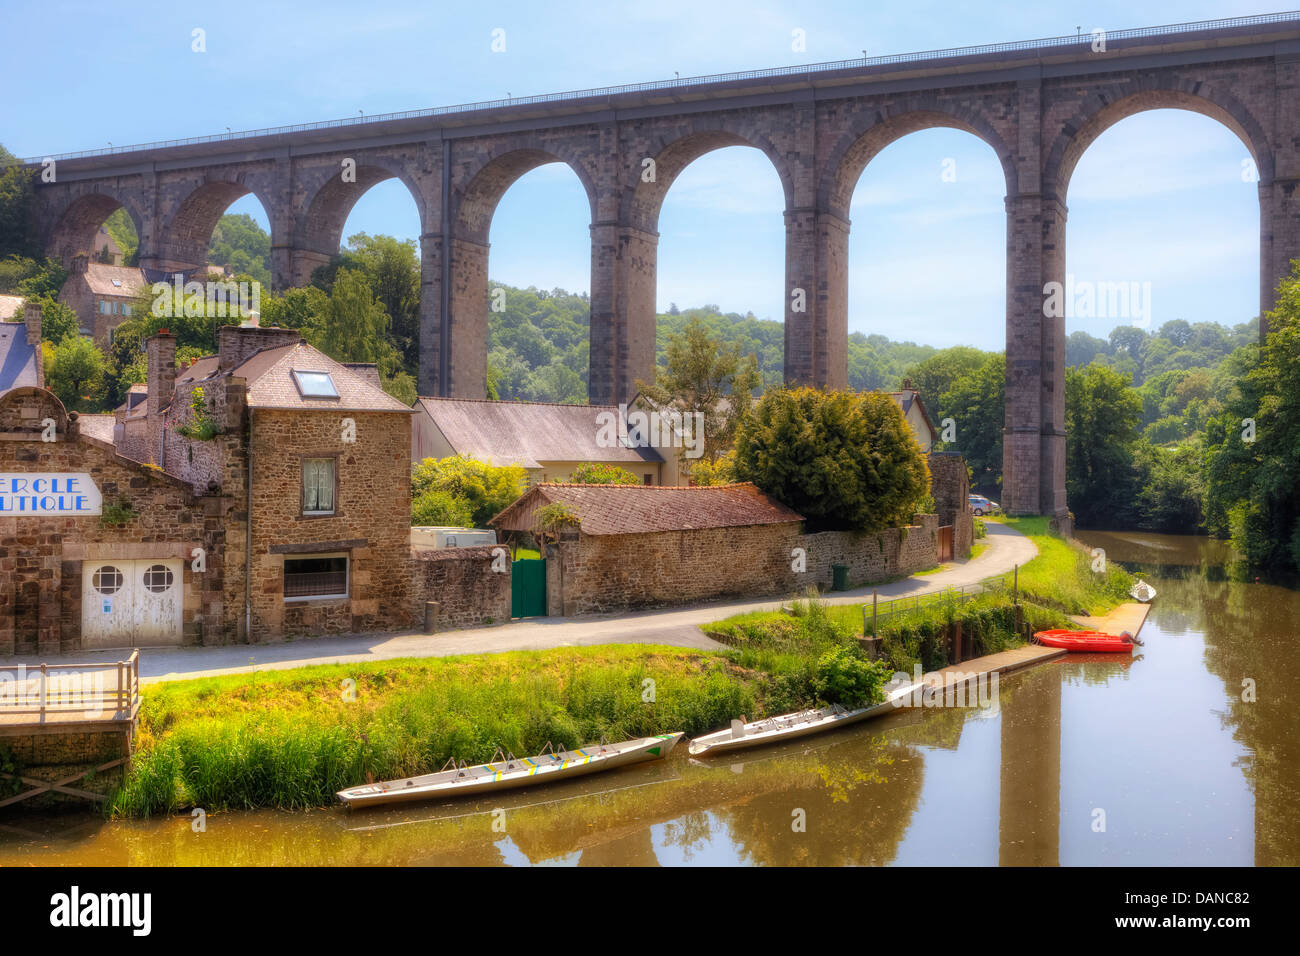 viaduct in Dinan, Brittany, France - Stock Image